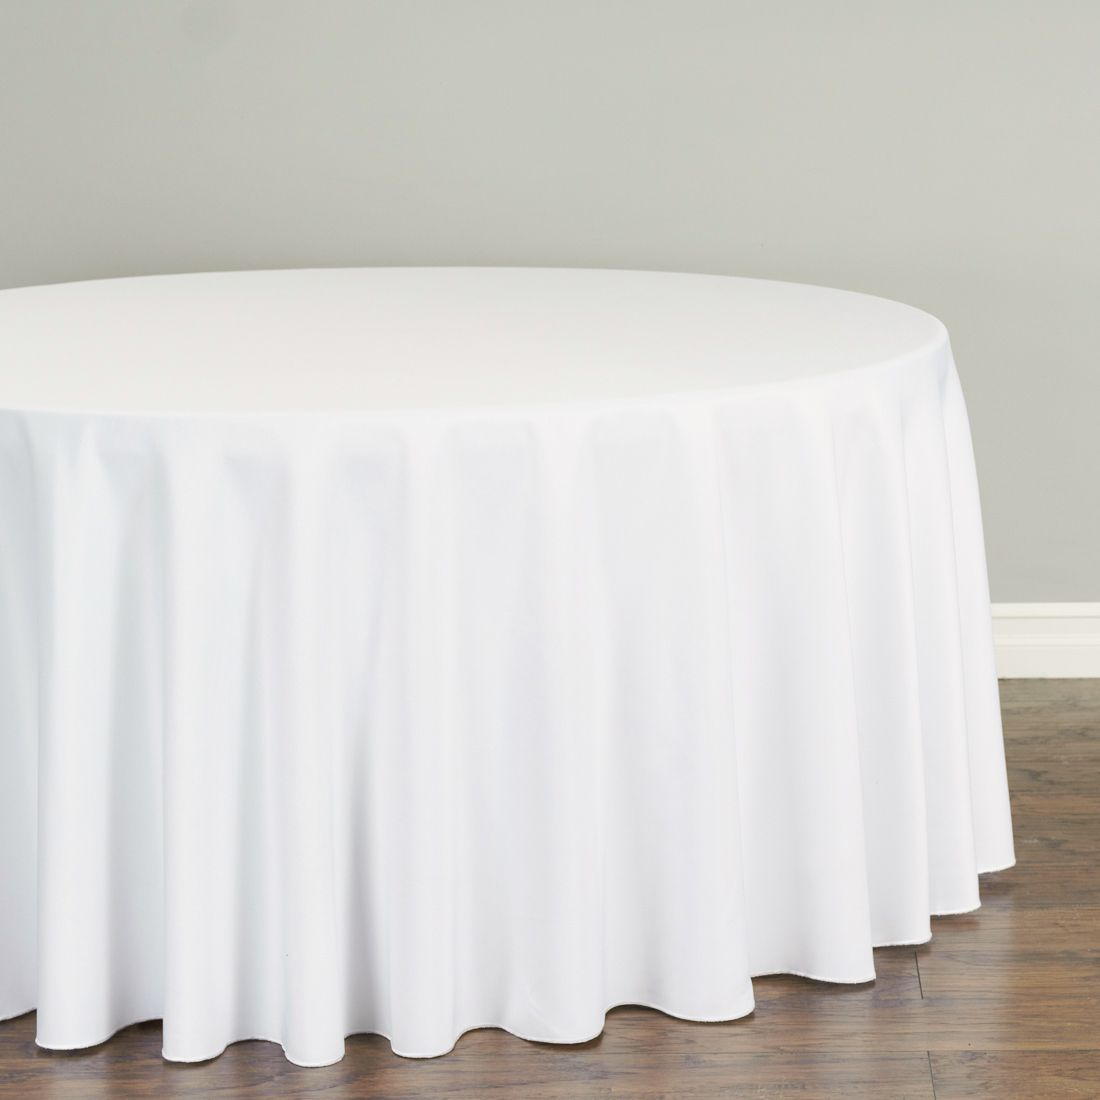 Check Out The Deal On 120 In Round Premium Polyester Tablecloth White At Linen Tablecloth Wedding Tablecloths Table Cloth Elegant Table